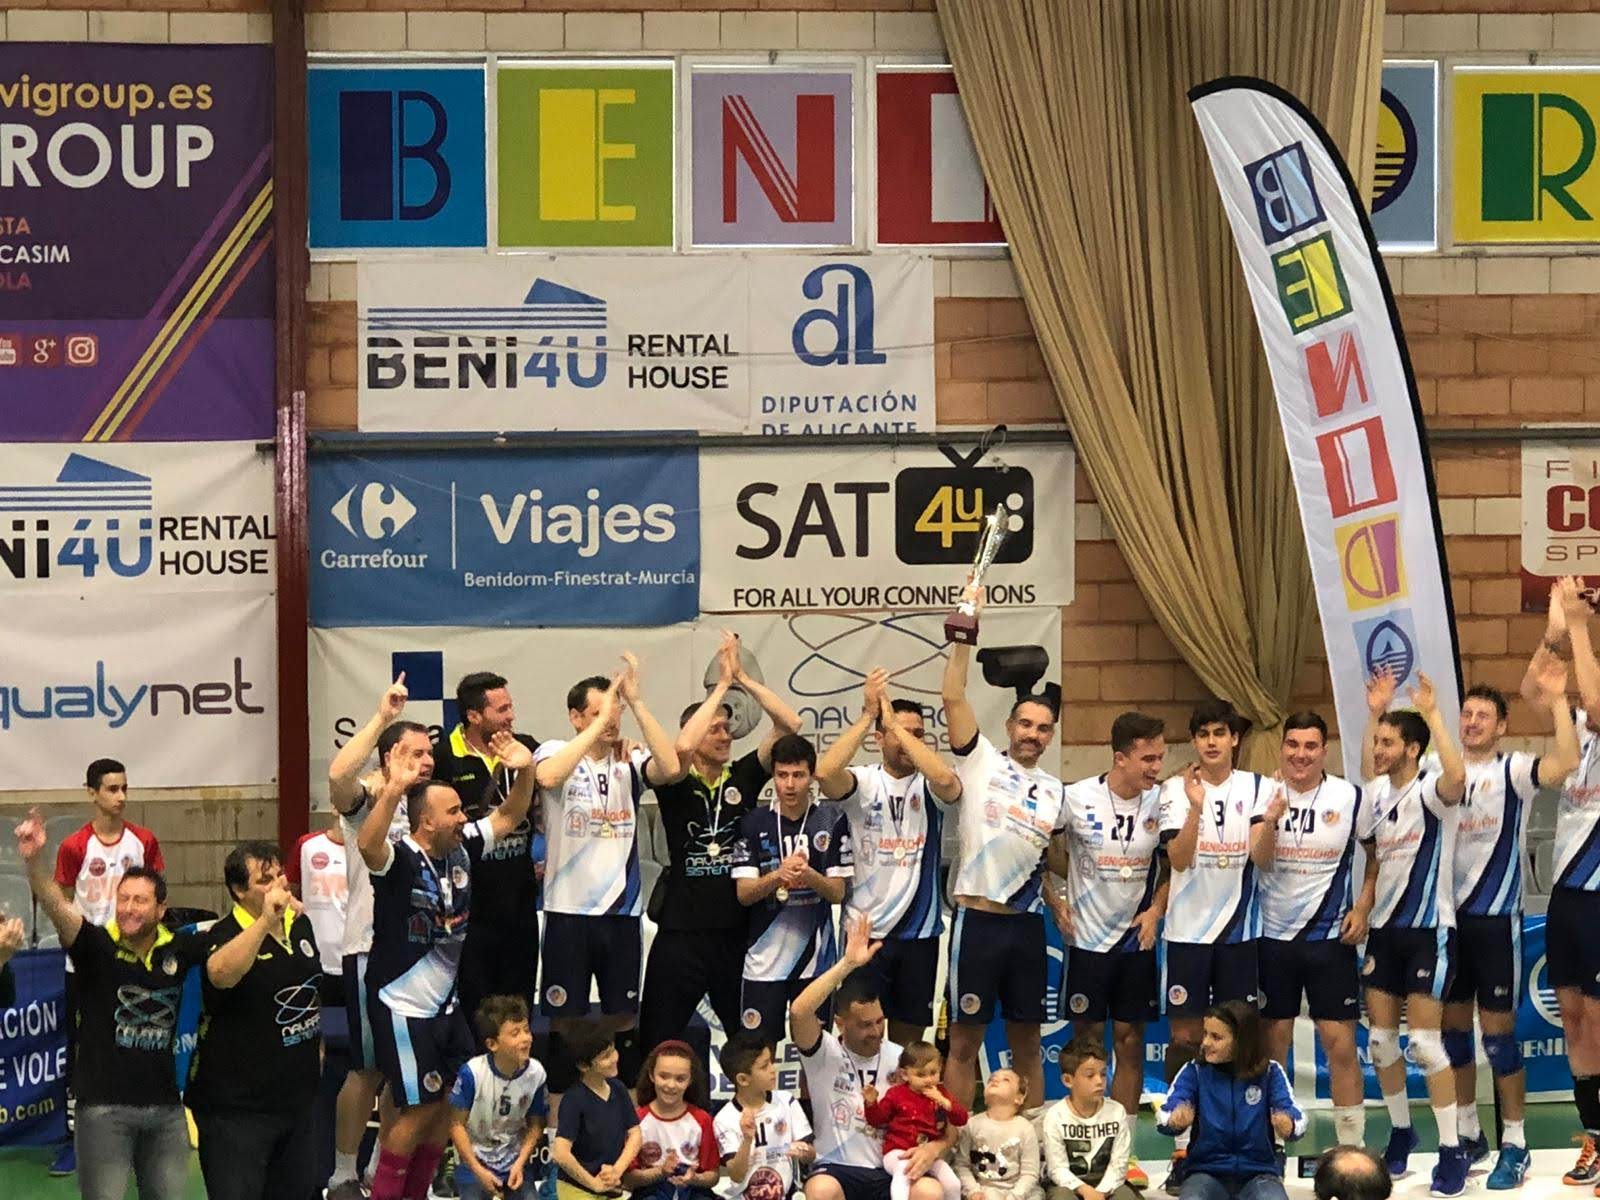 ASCENSO A LA SUPERLIGA 2 MASCULINA